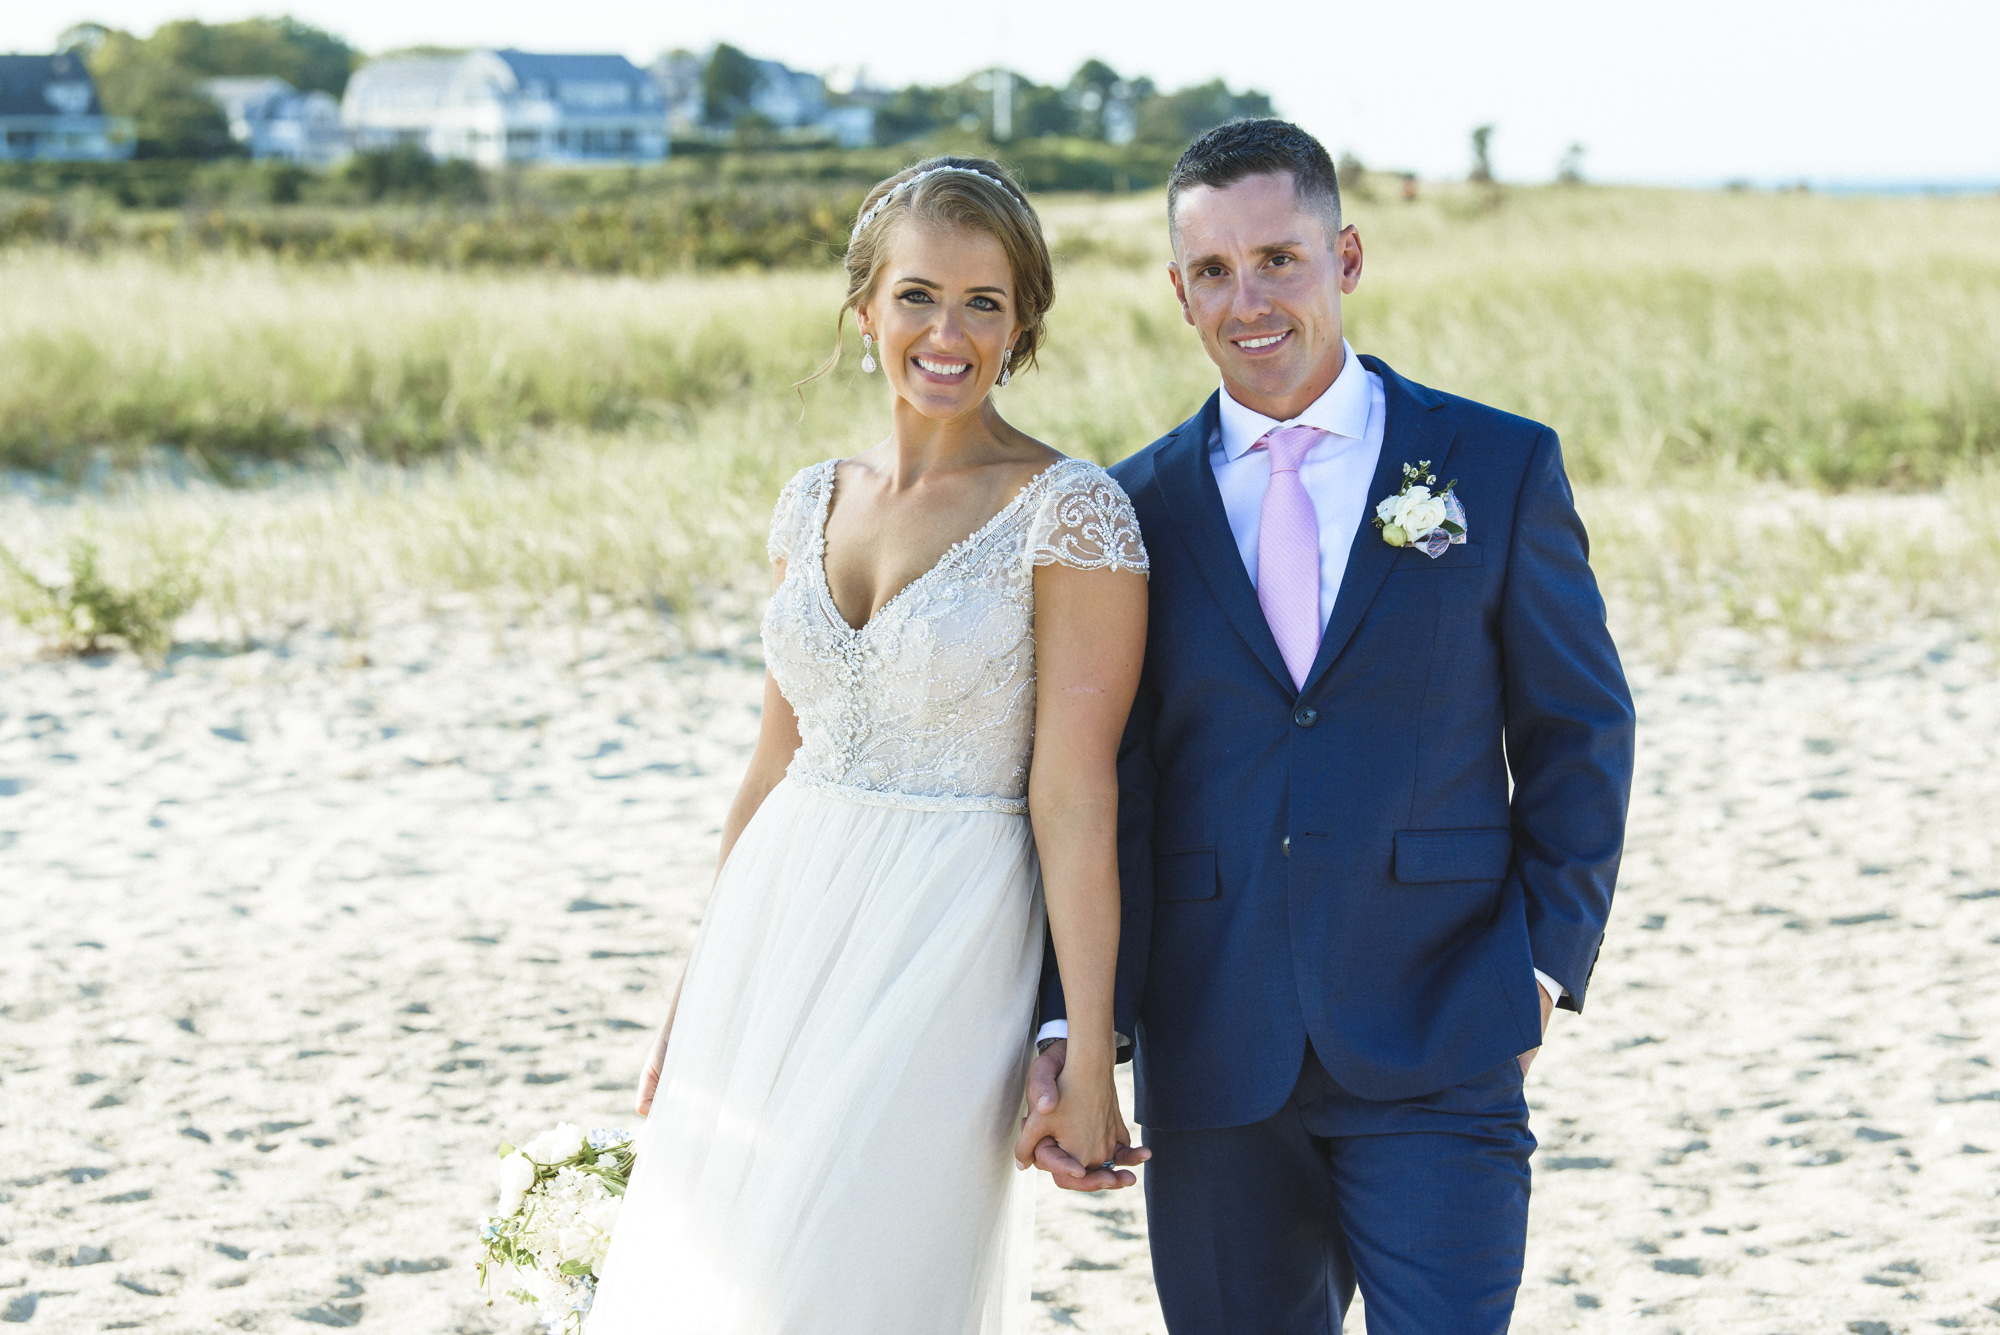 A bride and groom next to the Edgartown Lighthouse photo by David Welch Photography